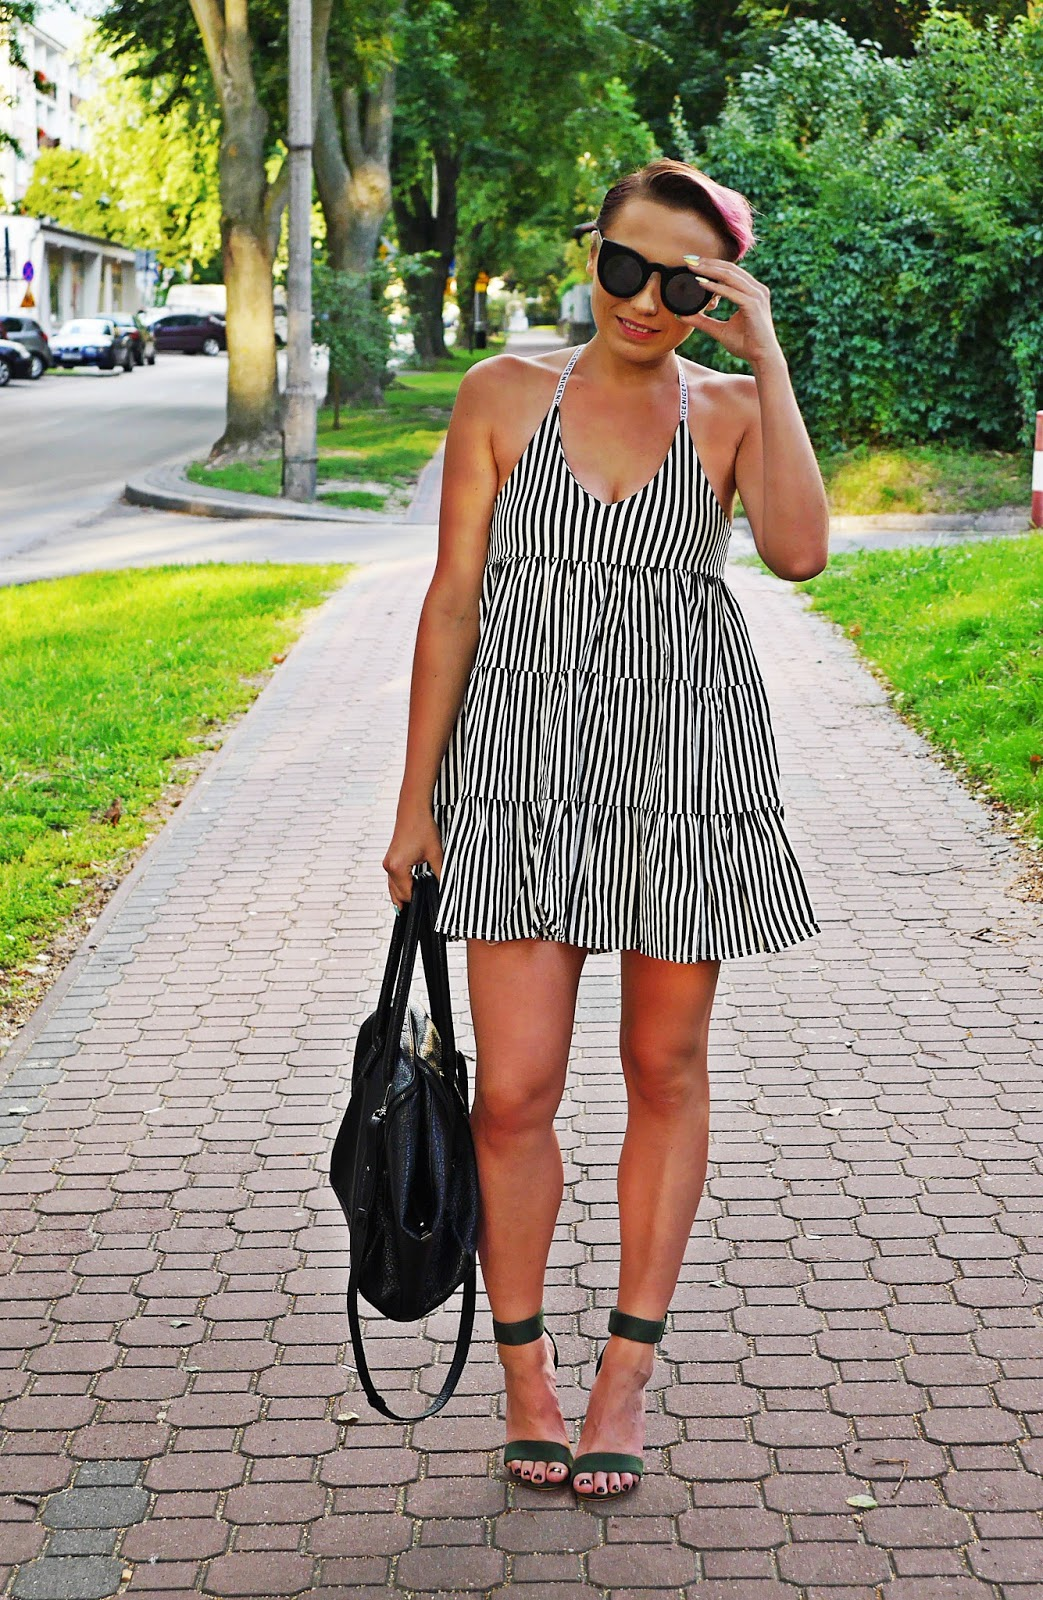 stripes_dress_green_heels_ootd_look_karyn_blog_010817c